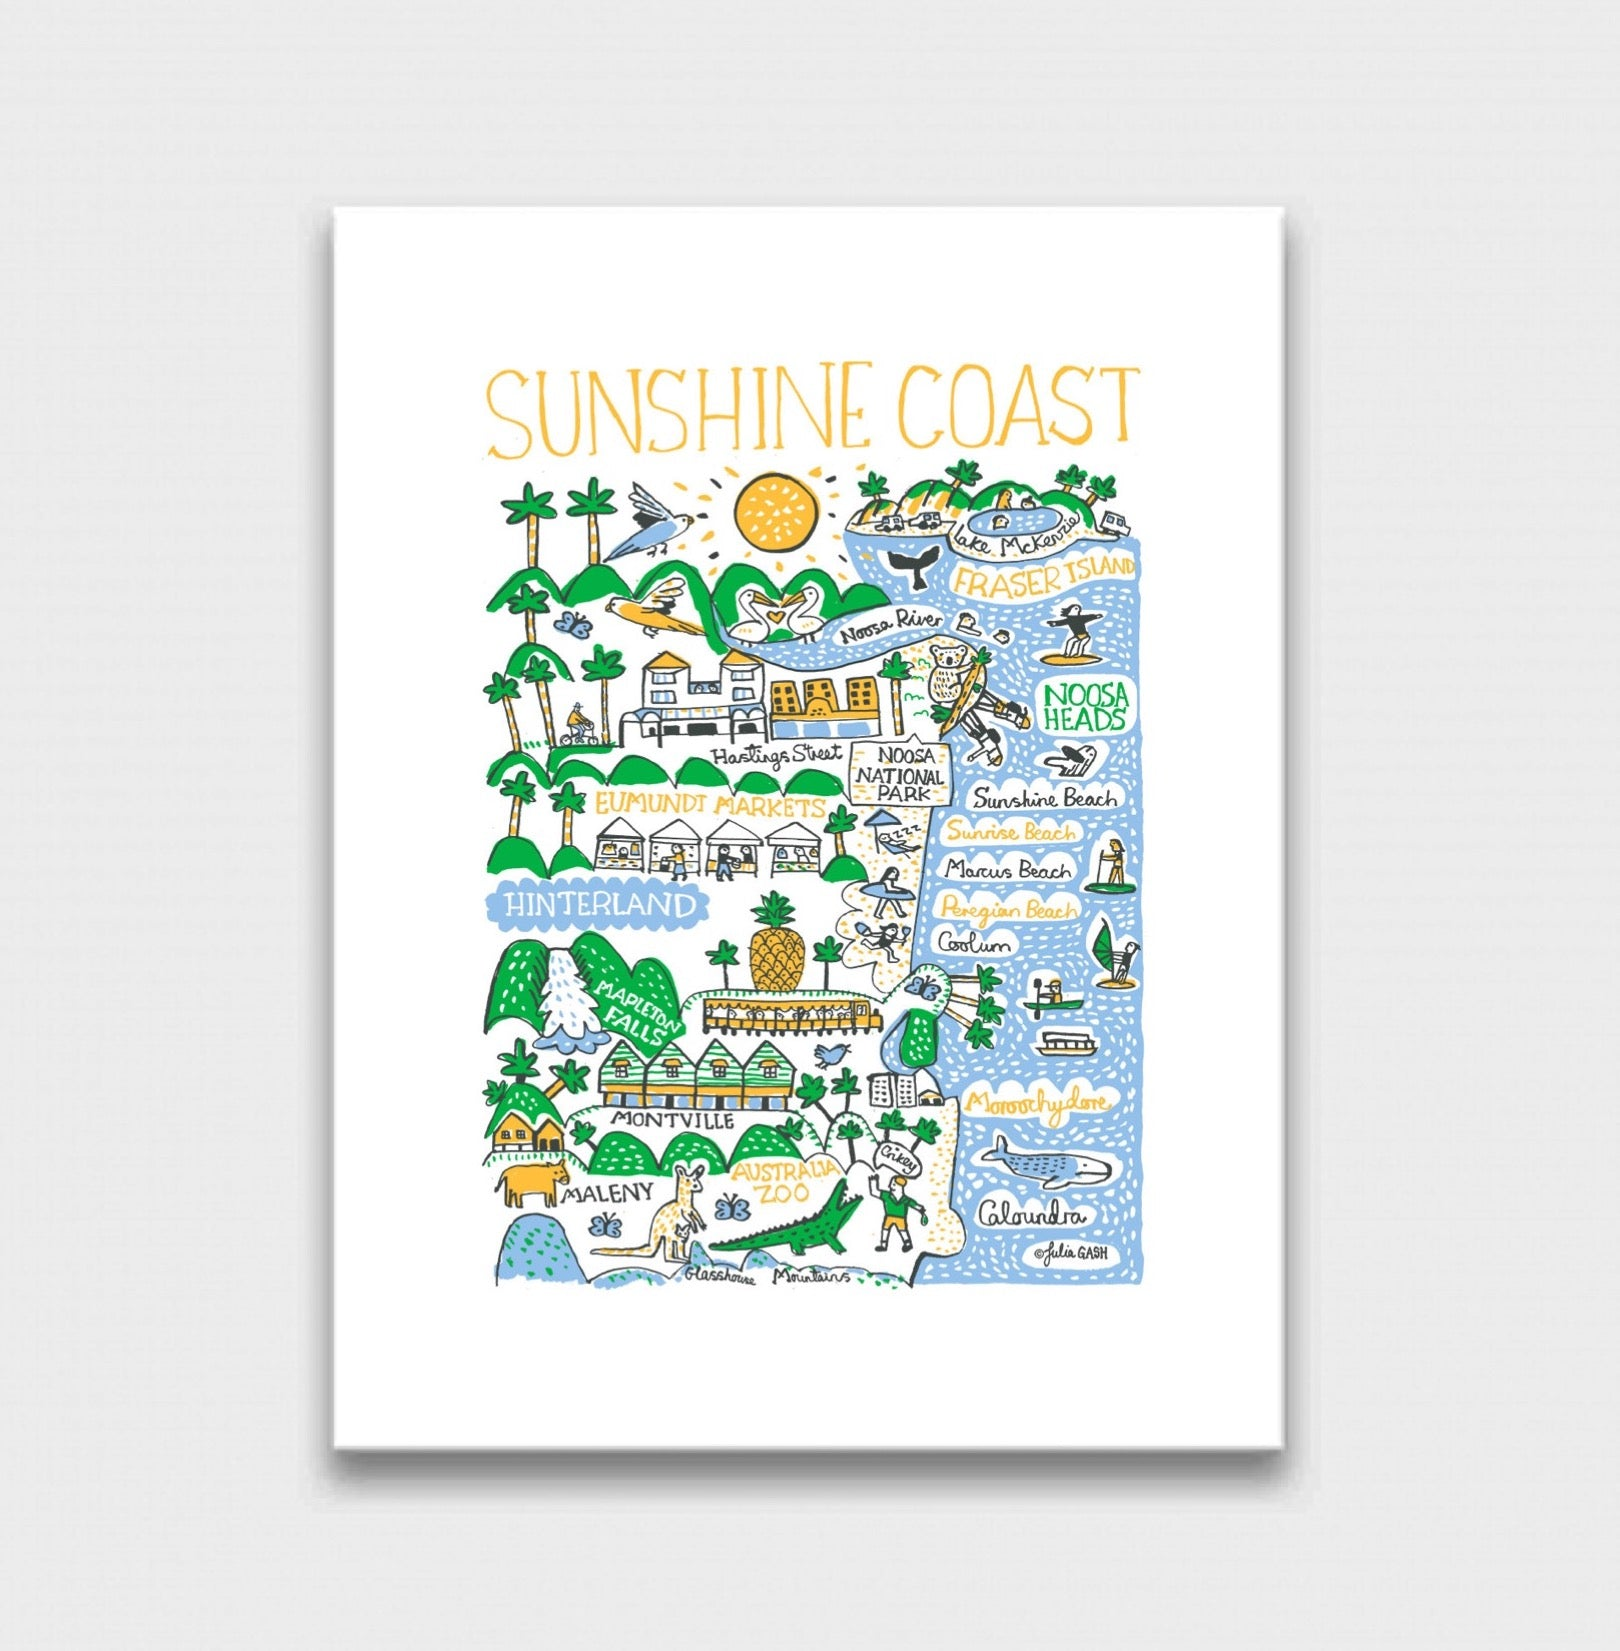 Sunshine Coast Art Print - Julia Gash